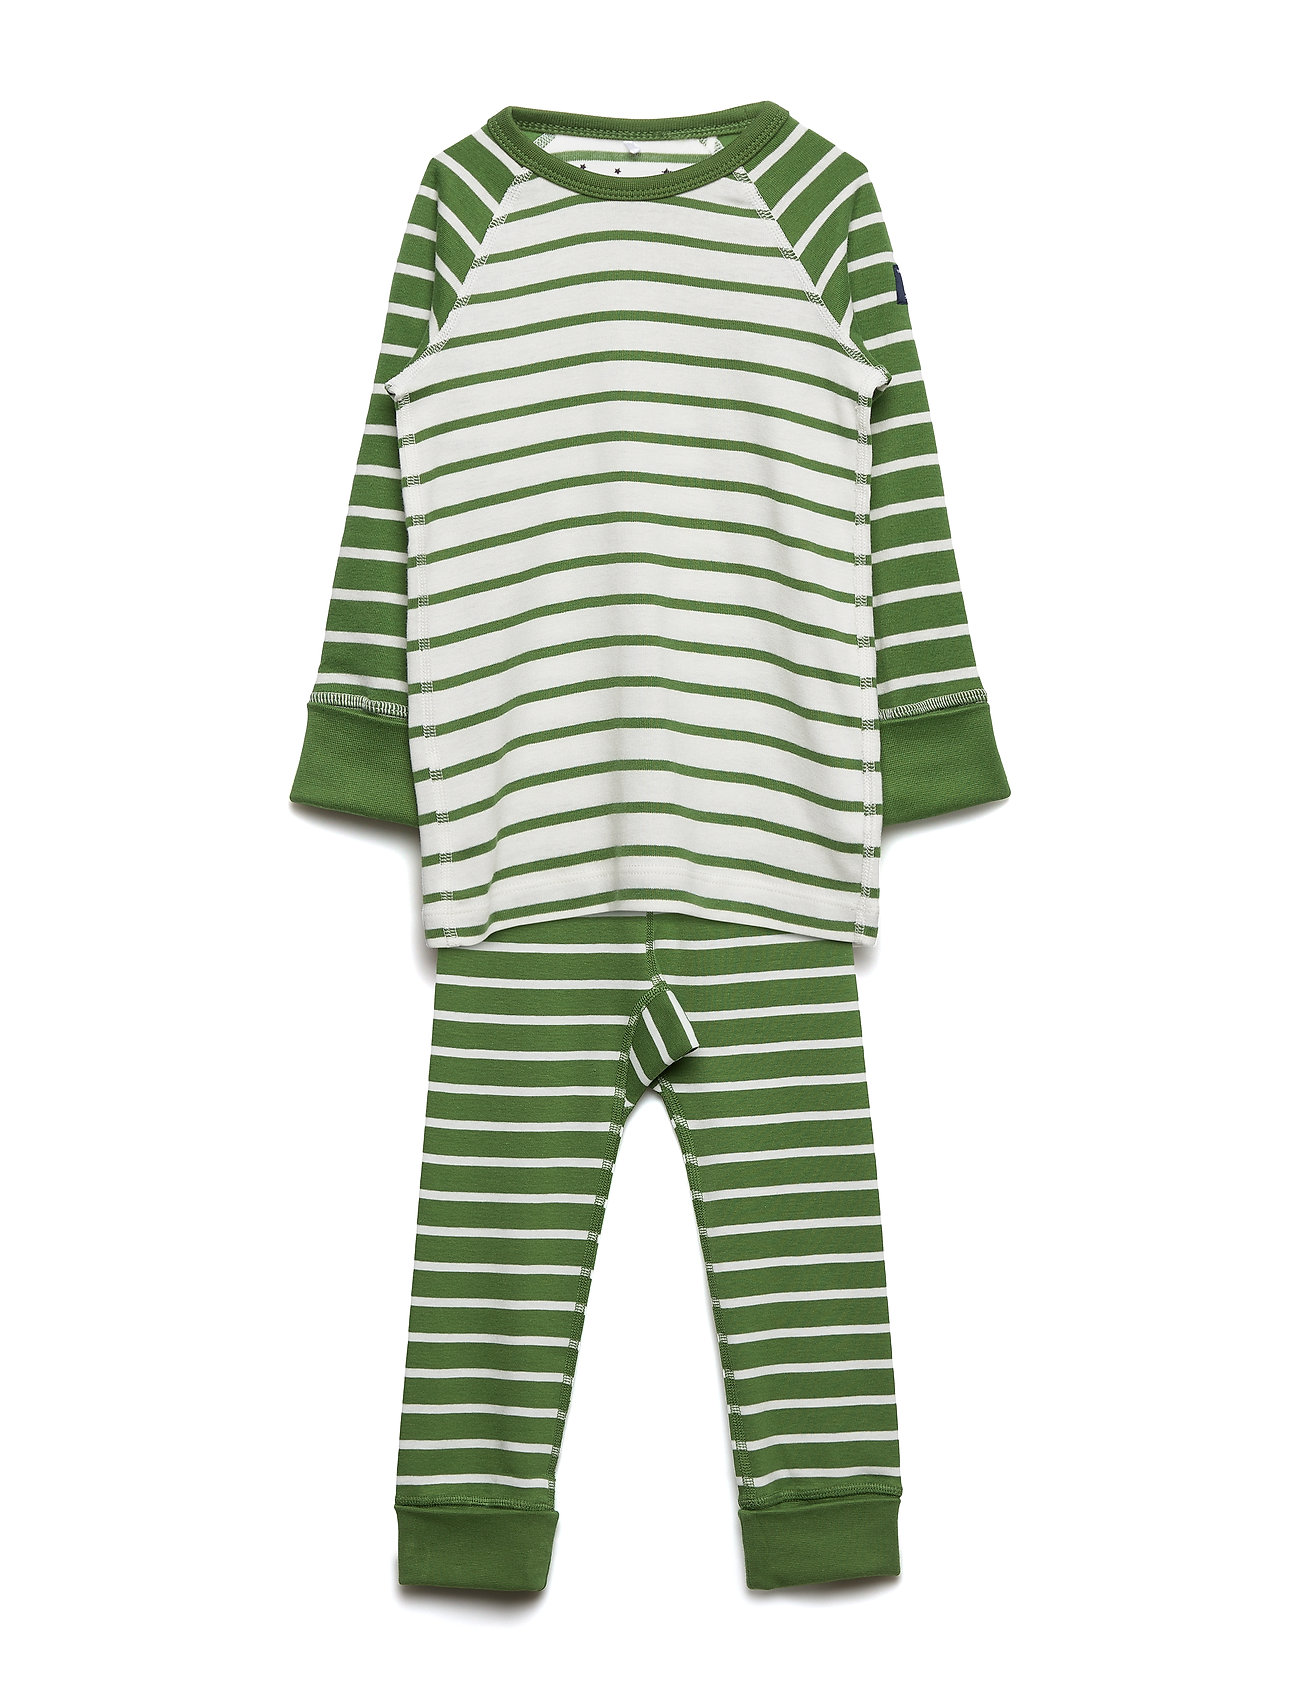 Polarn O. Pyret Pyjamas AOP Preschool - WILLOW BOUGH